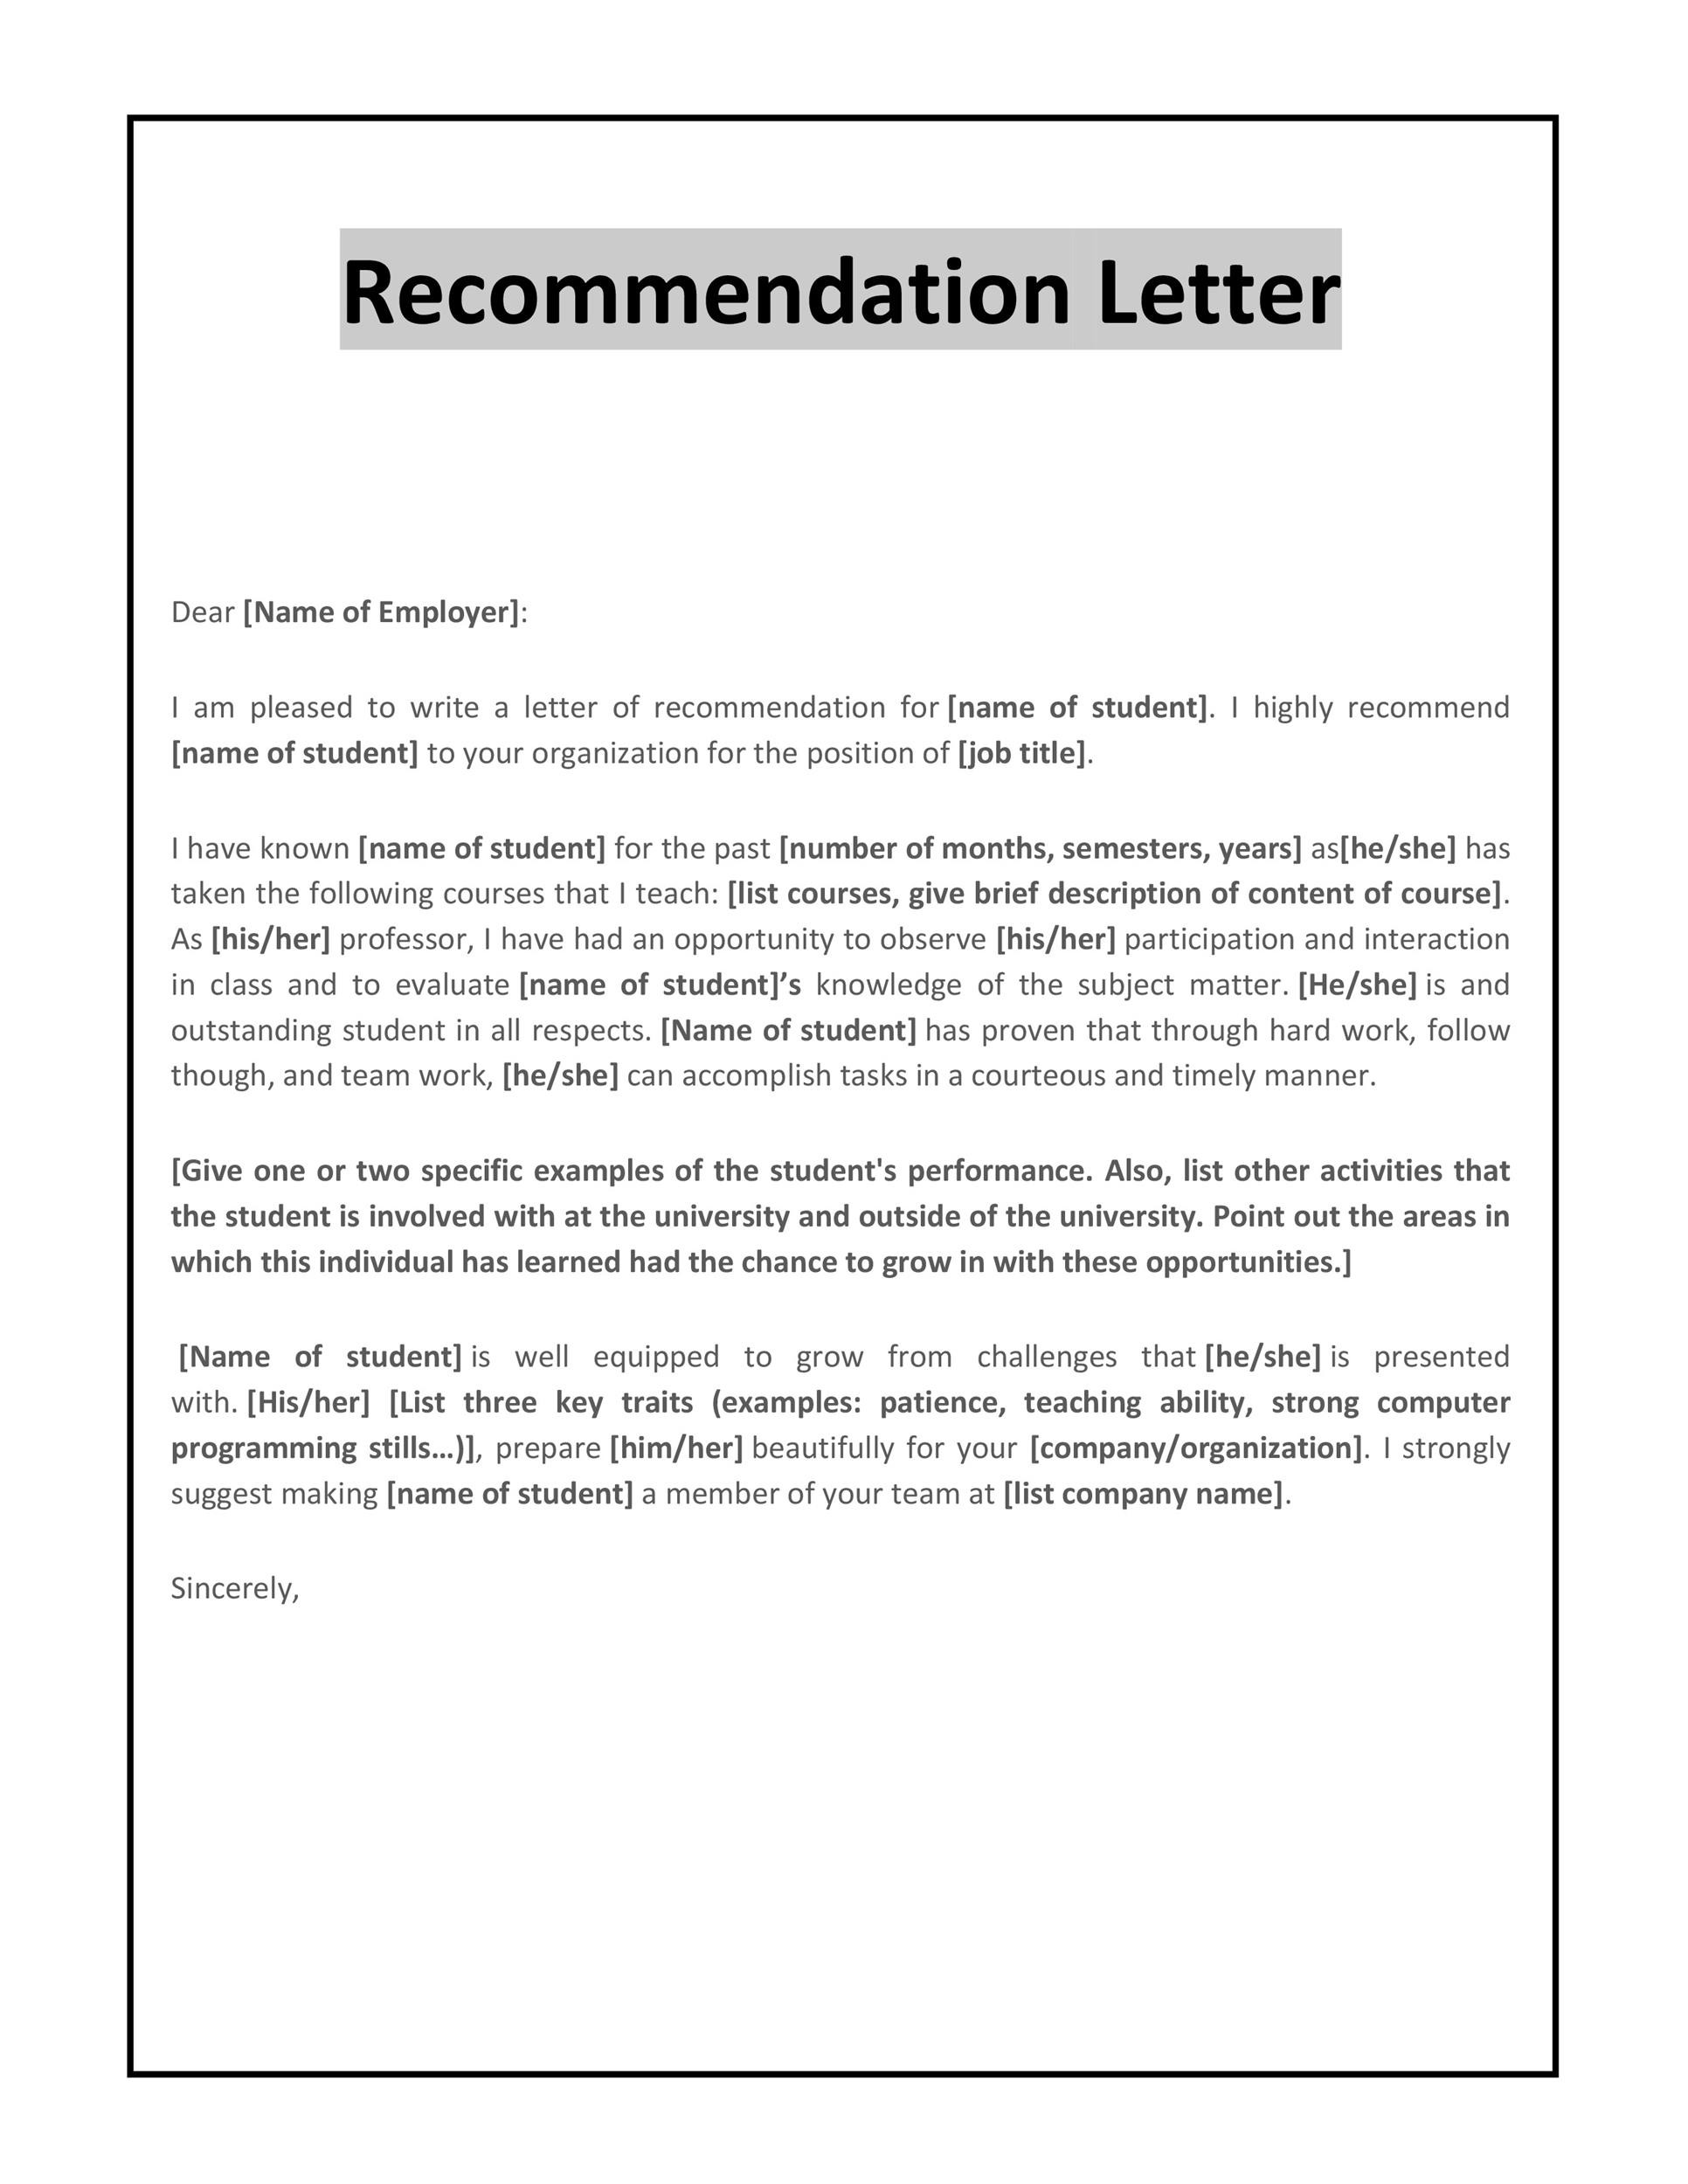 how to begin letter of recommendation 43 free letter of recommendation templates samples how to begin letter of recommendation